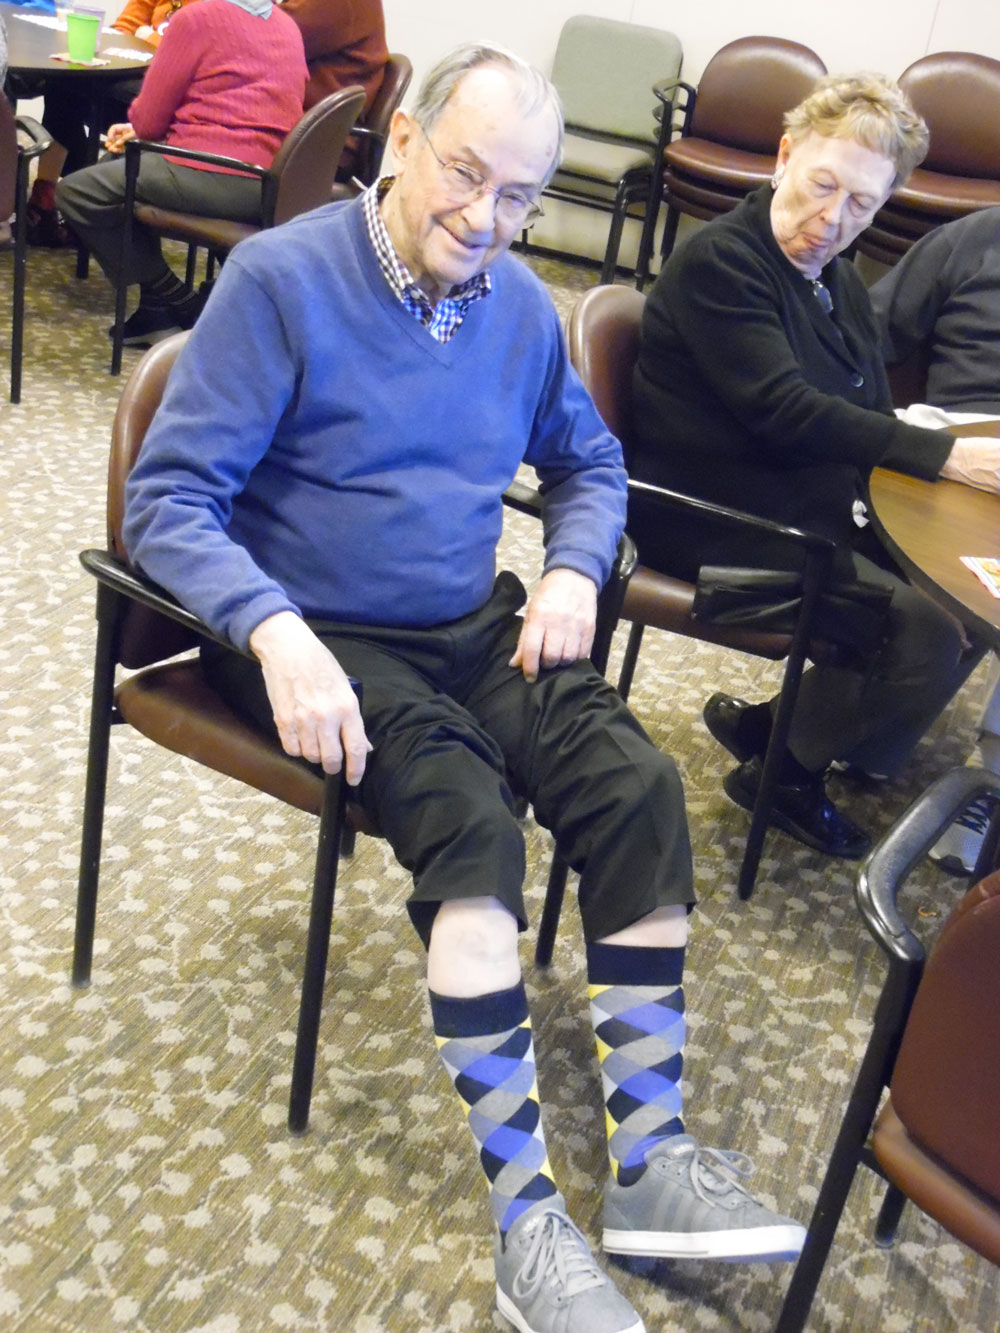 Pacific Springs Village residents show off their fashionable socks during a special Toasty Toes happy hour at the community